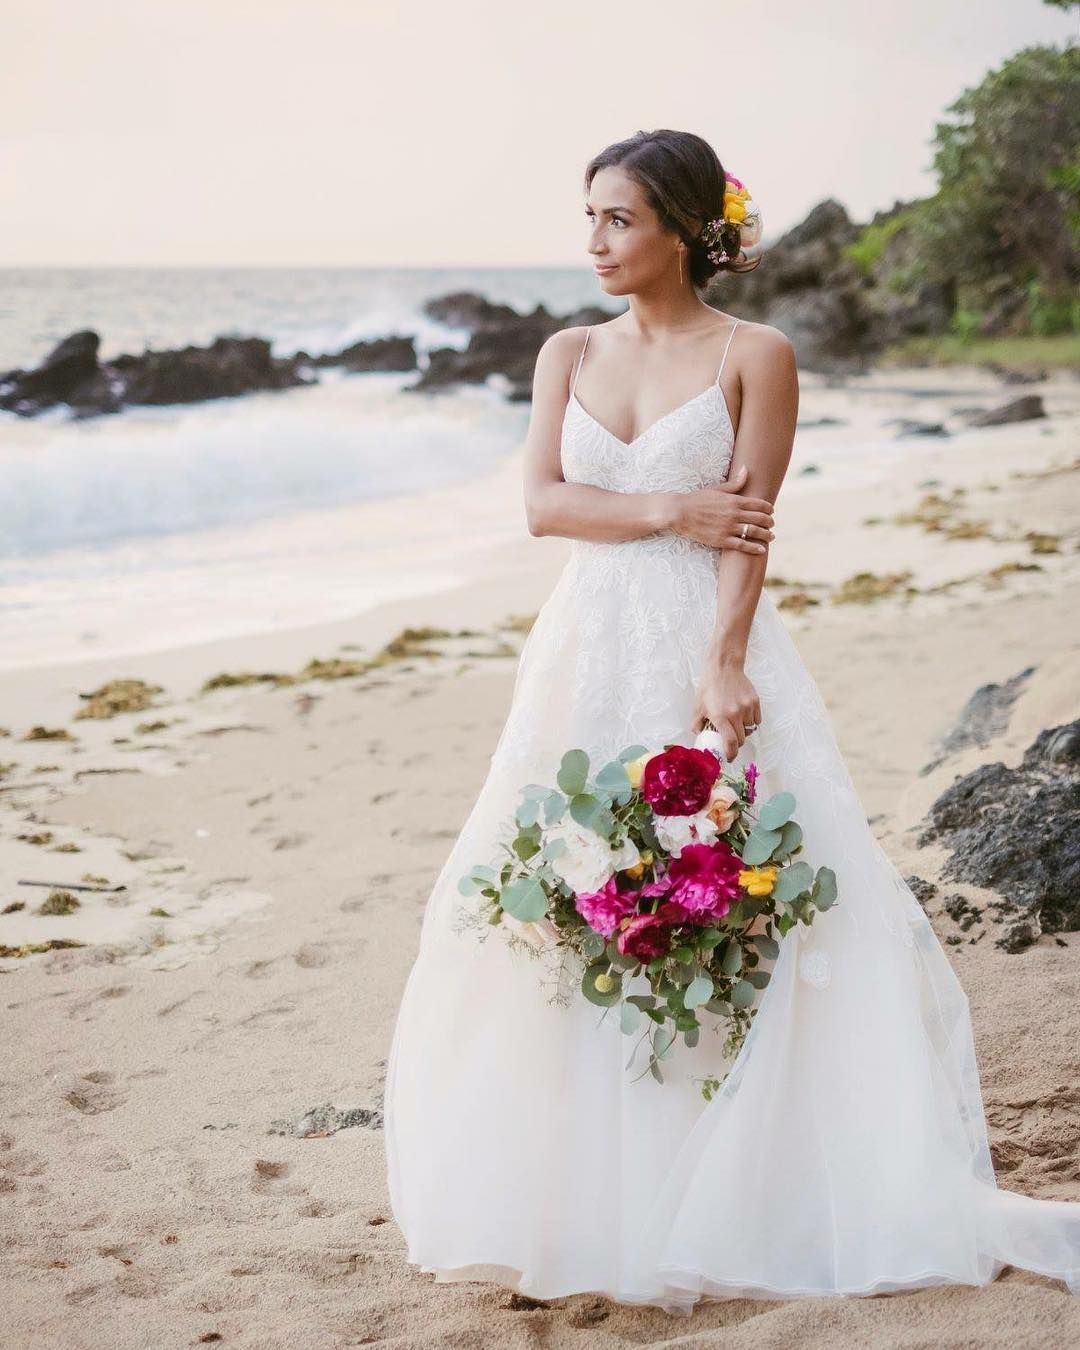 A Beach Wedding In Puerto Rico Can Be As Casual Or As Elegant As You Want Floral Design Stemevents Venue Wv In 2020 Wedding Wedding Gowns Sleeveless Wedding Dress